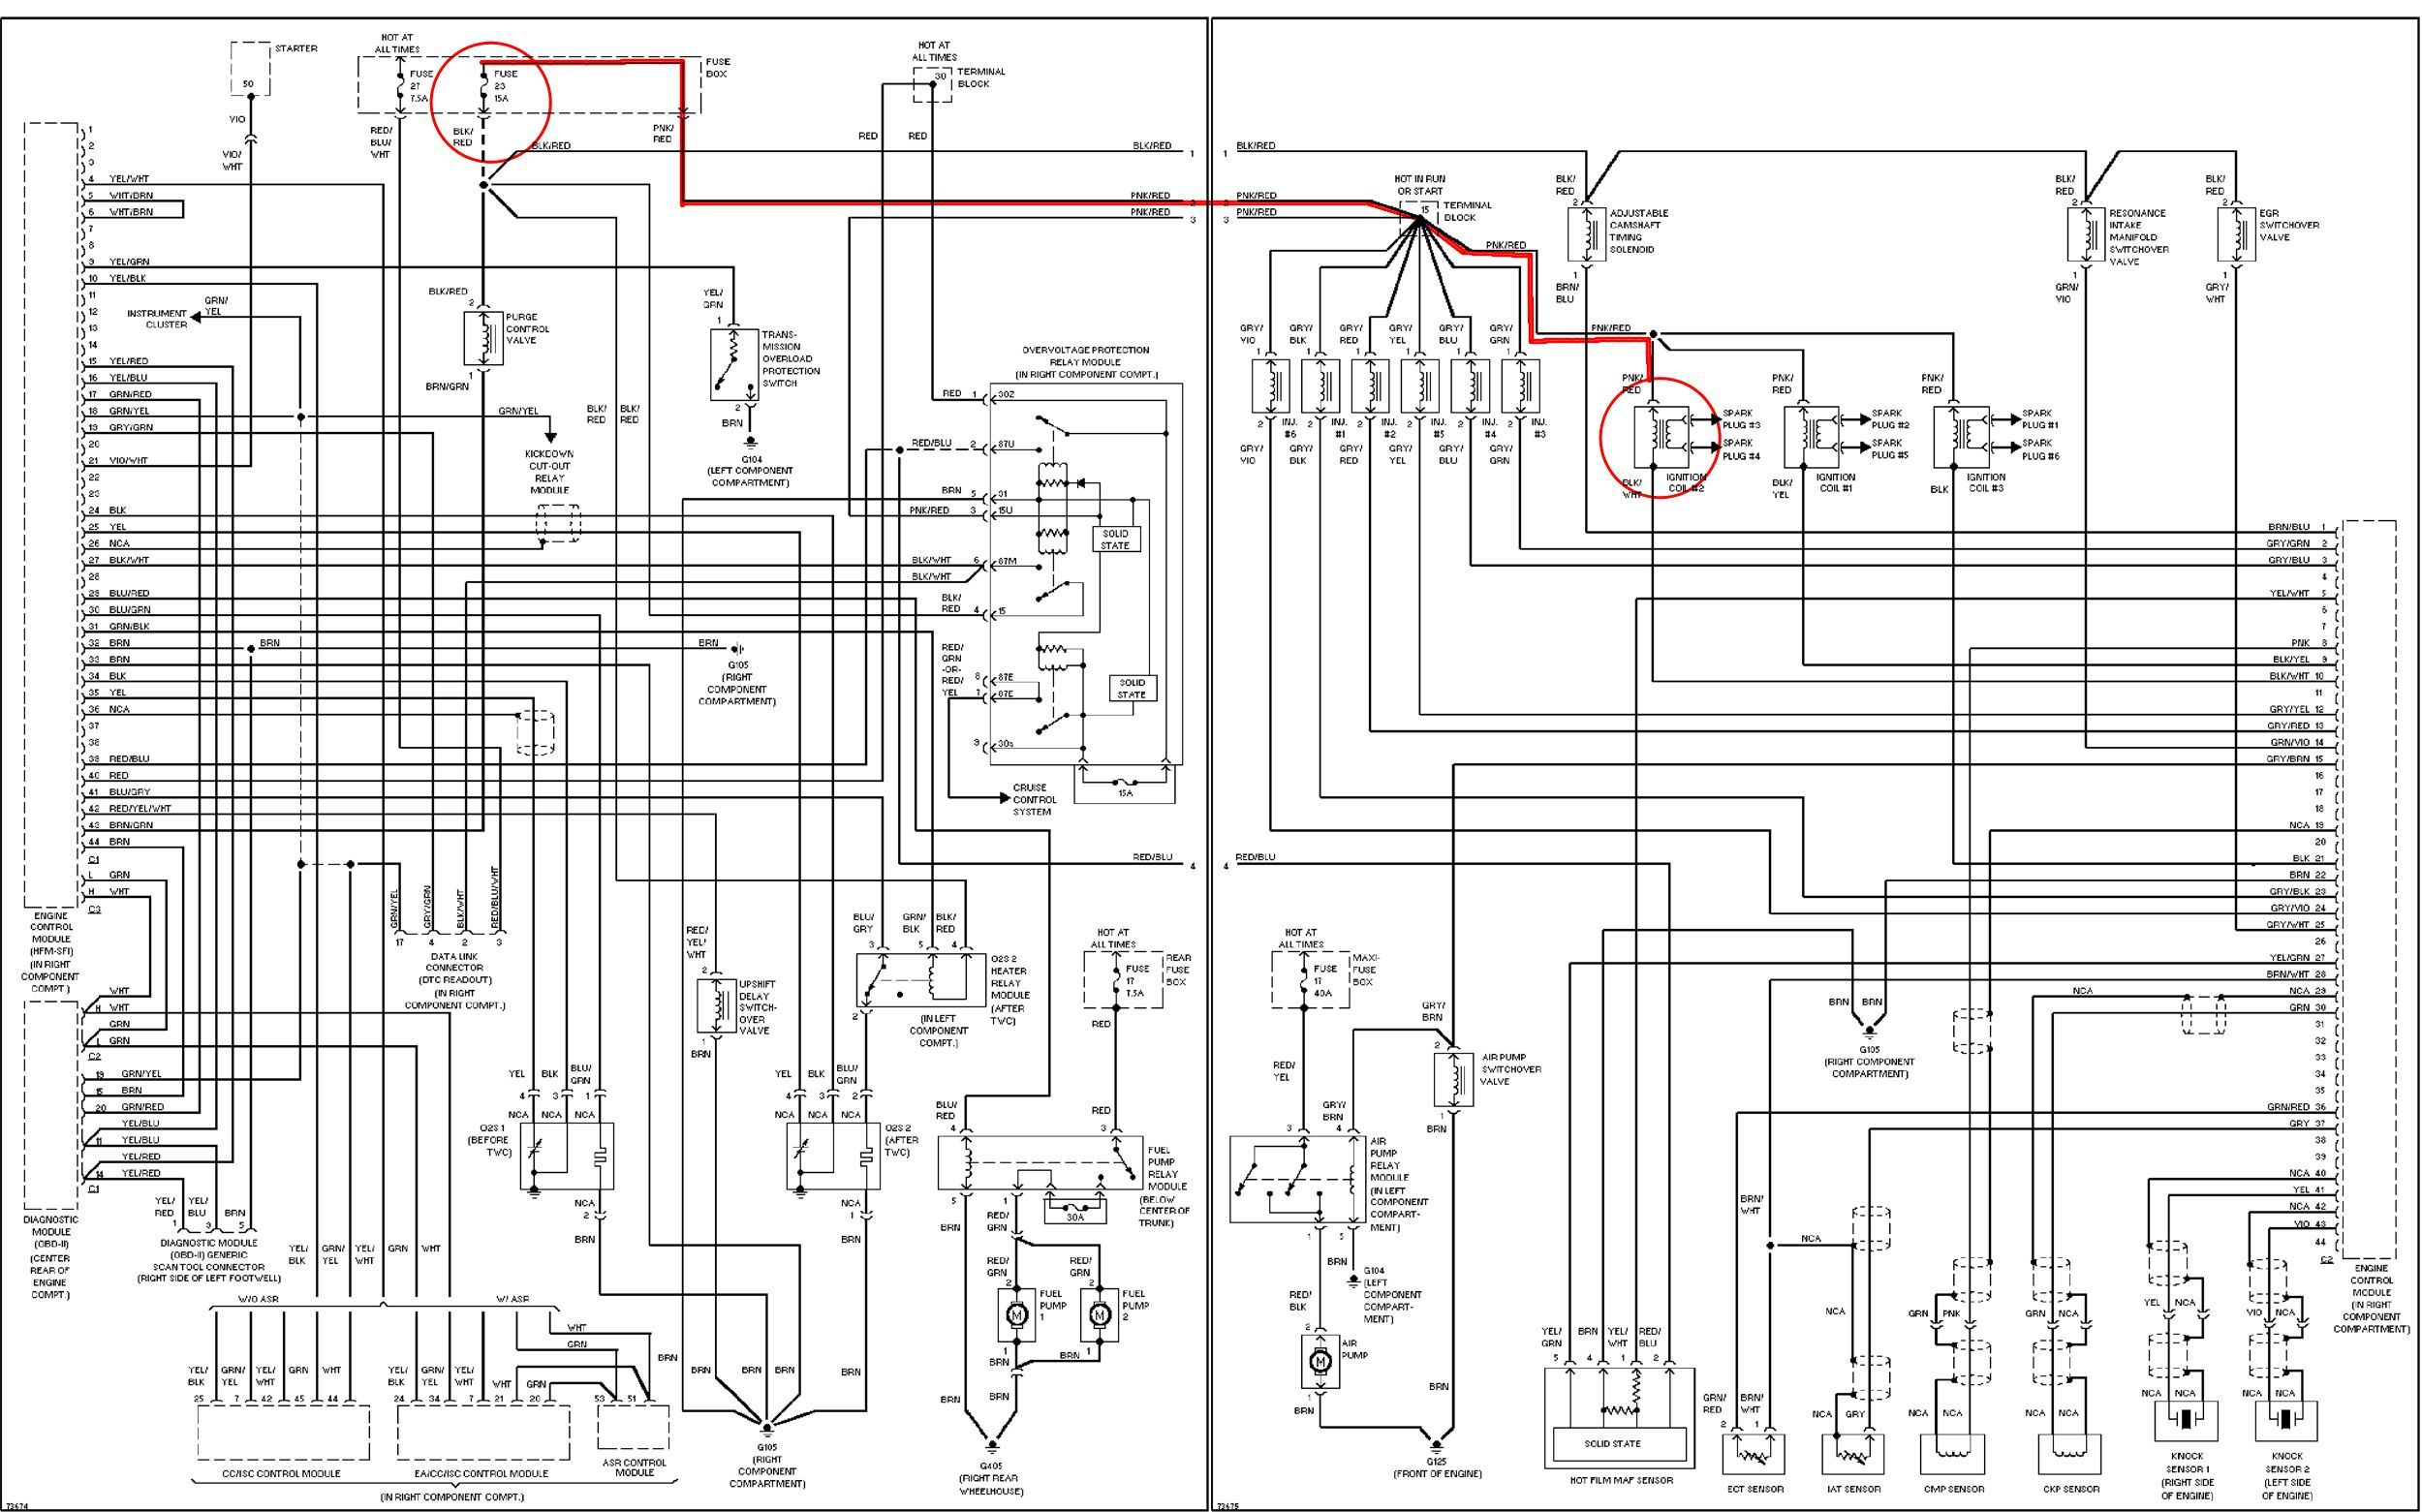 k1blm to mercedes benz wiring diagram